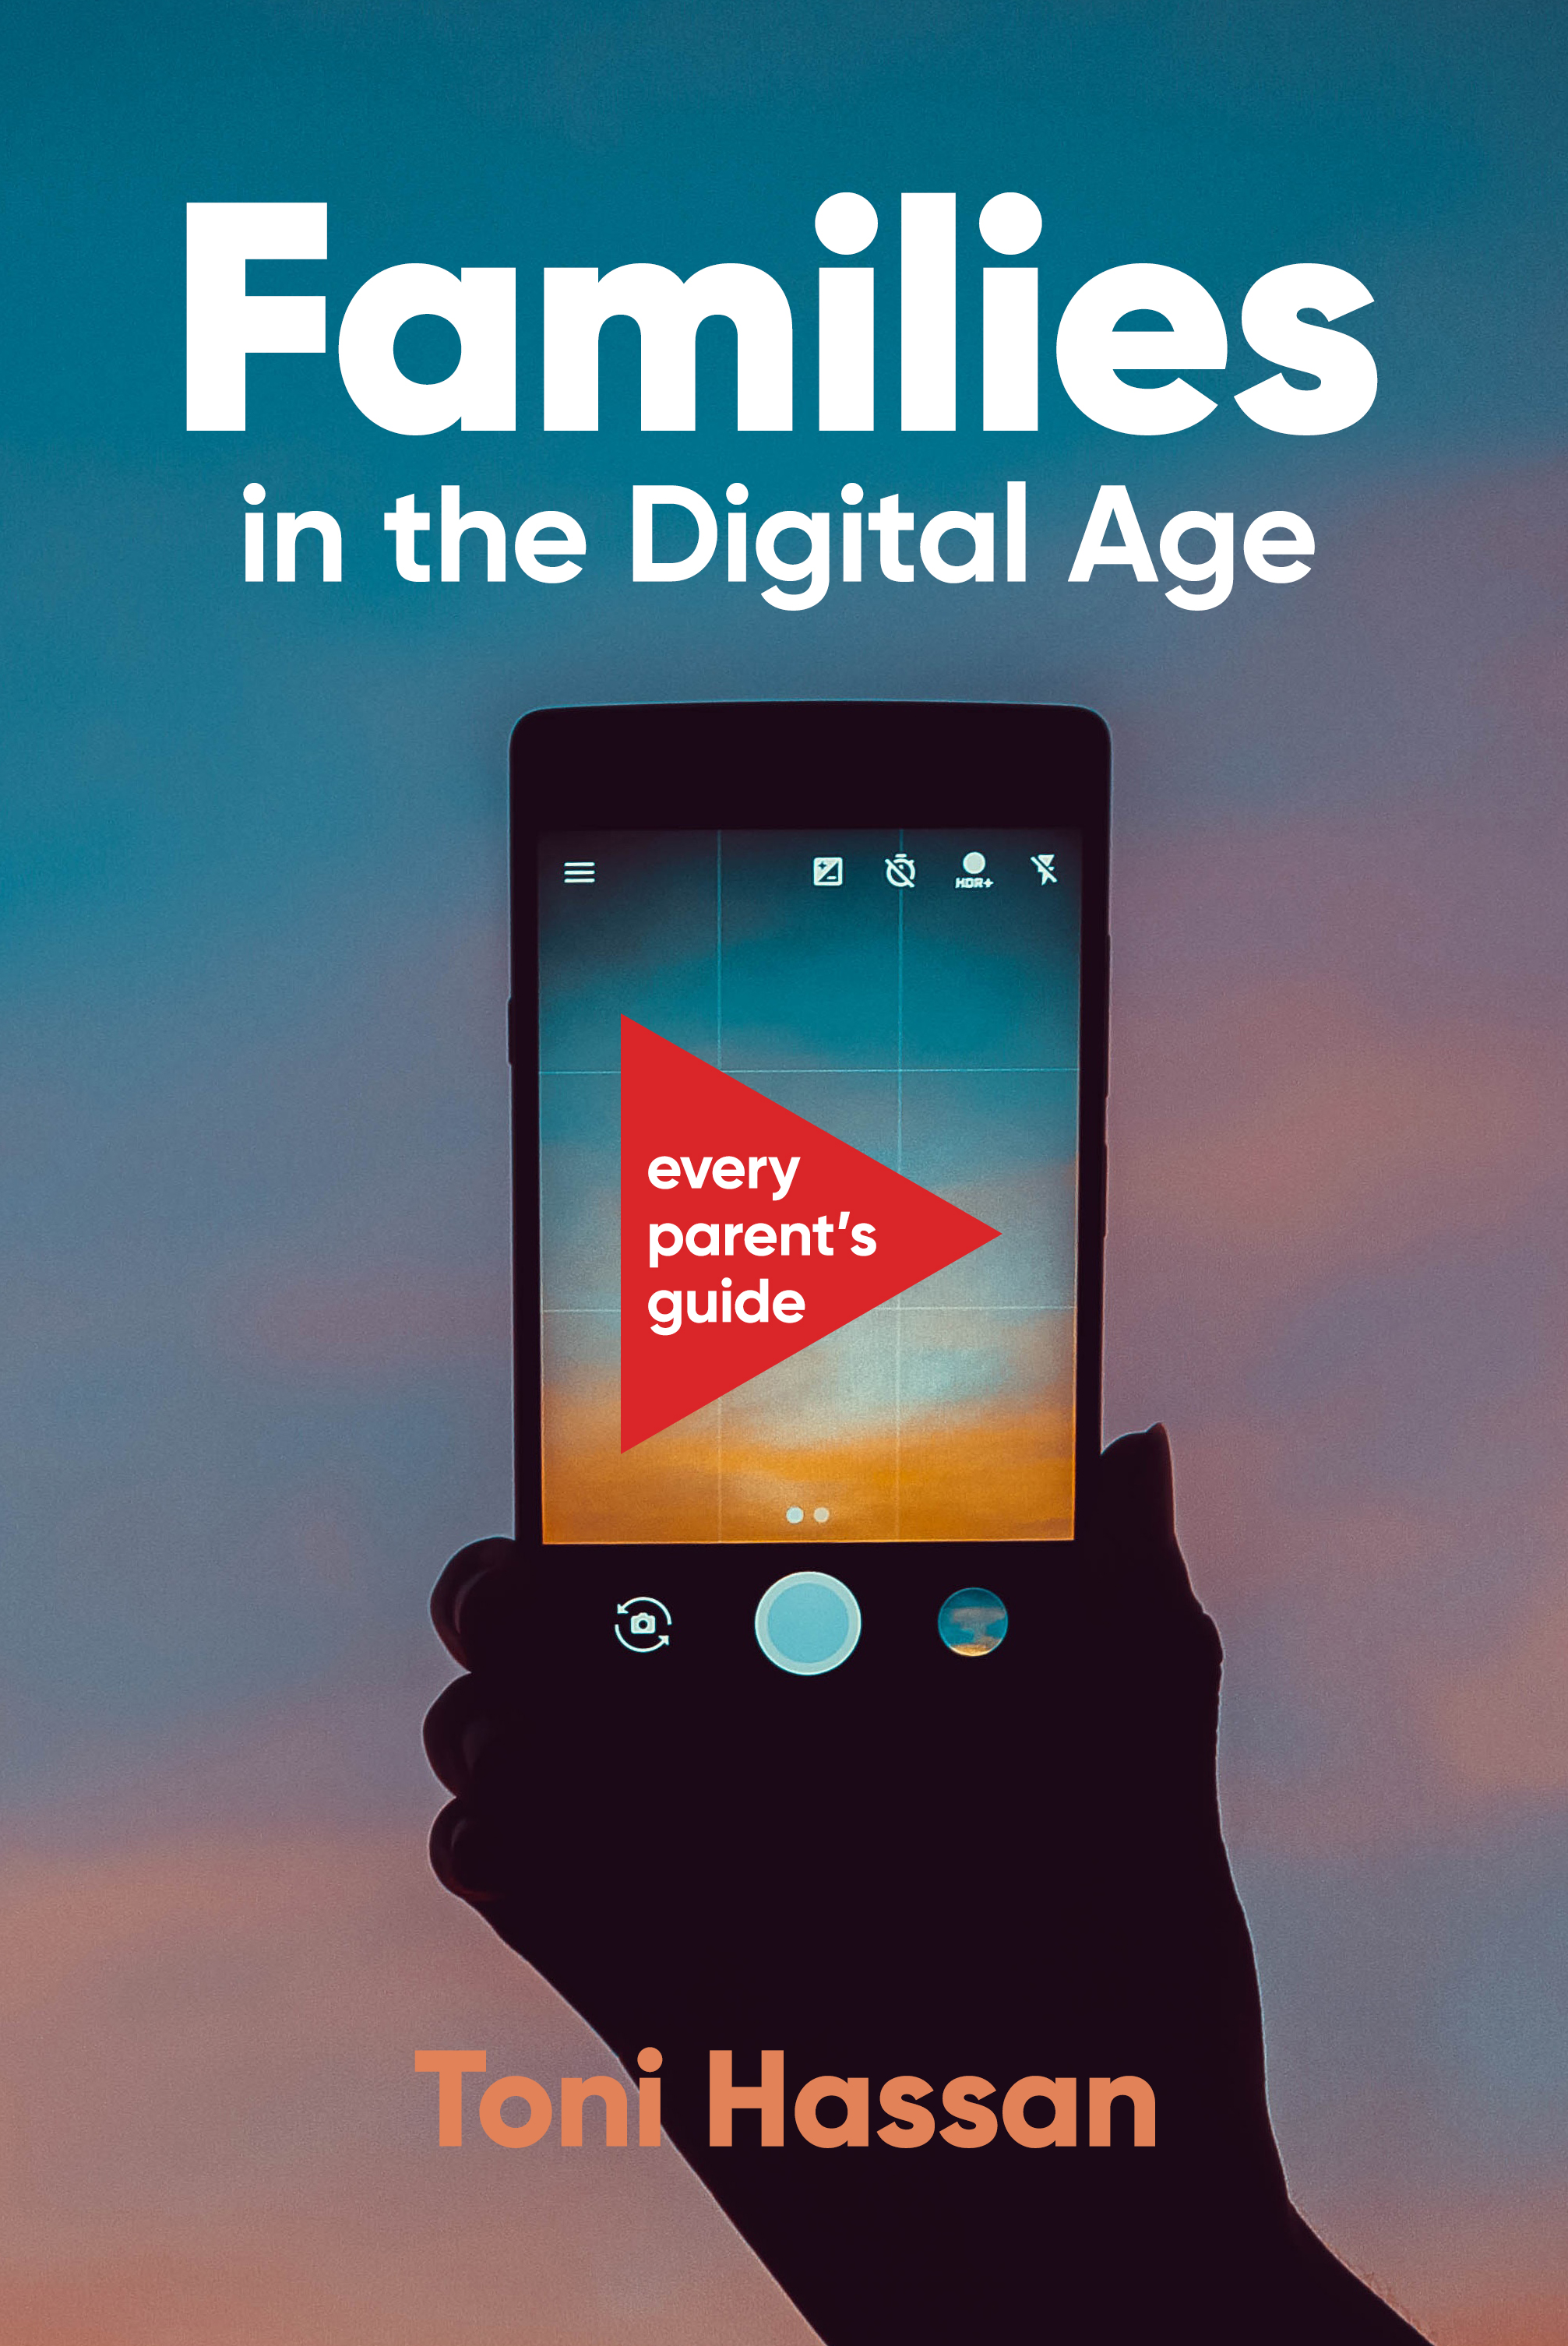 Families in the Digital Age_Cover 02.jpg